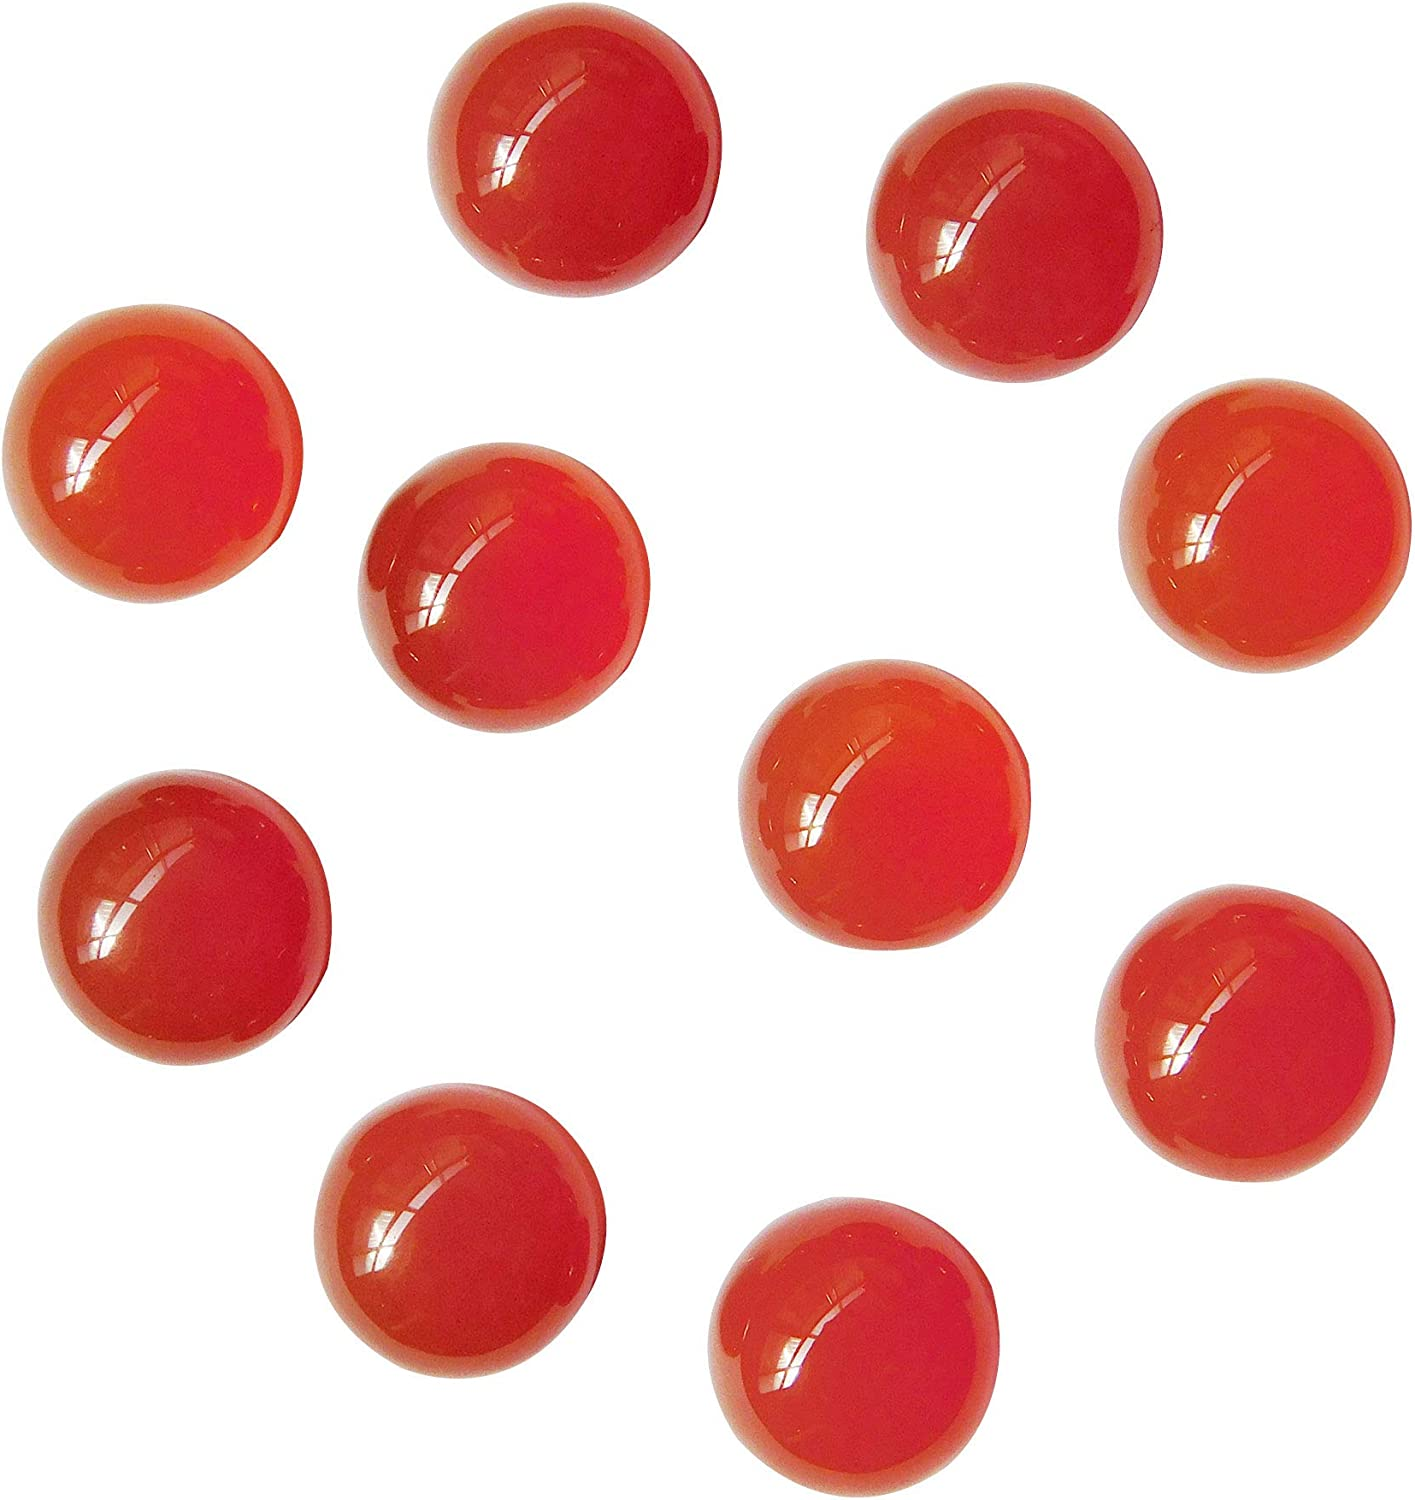 Natural Las Vegas Mall Red Onyx 6x6 mm Round Gems Loose Finally resale start Jewelry Cabochon Making